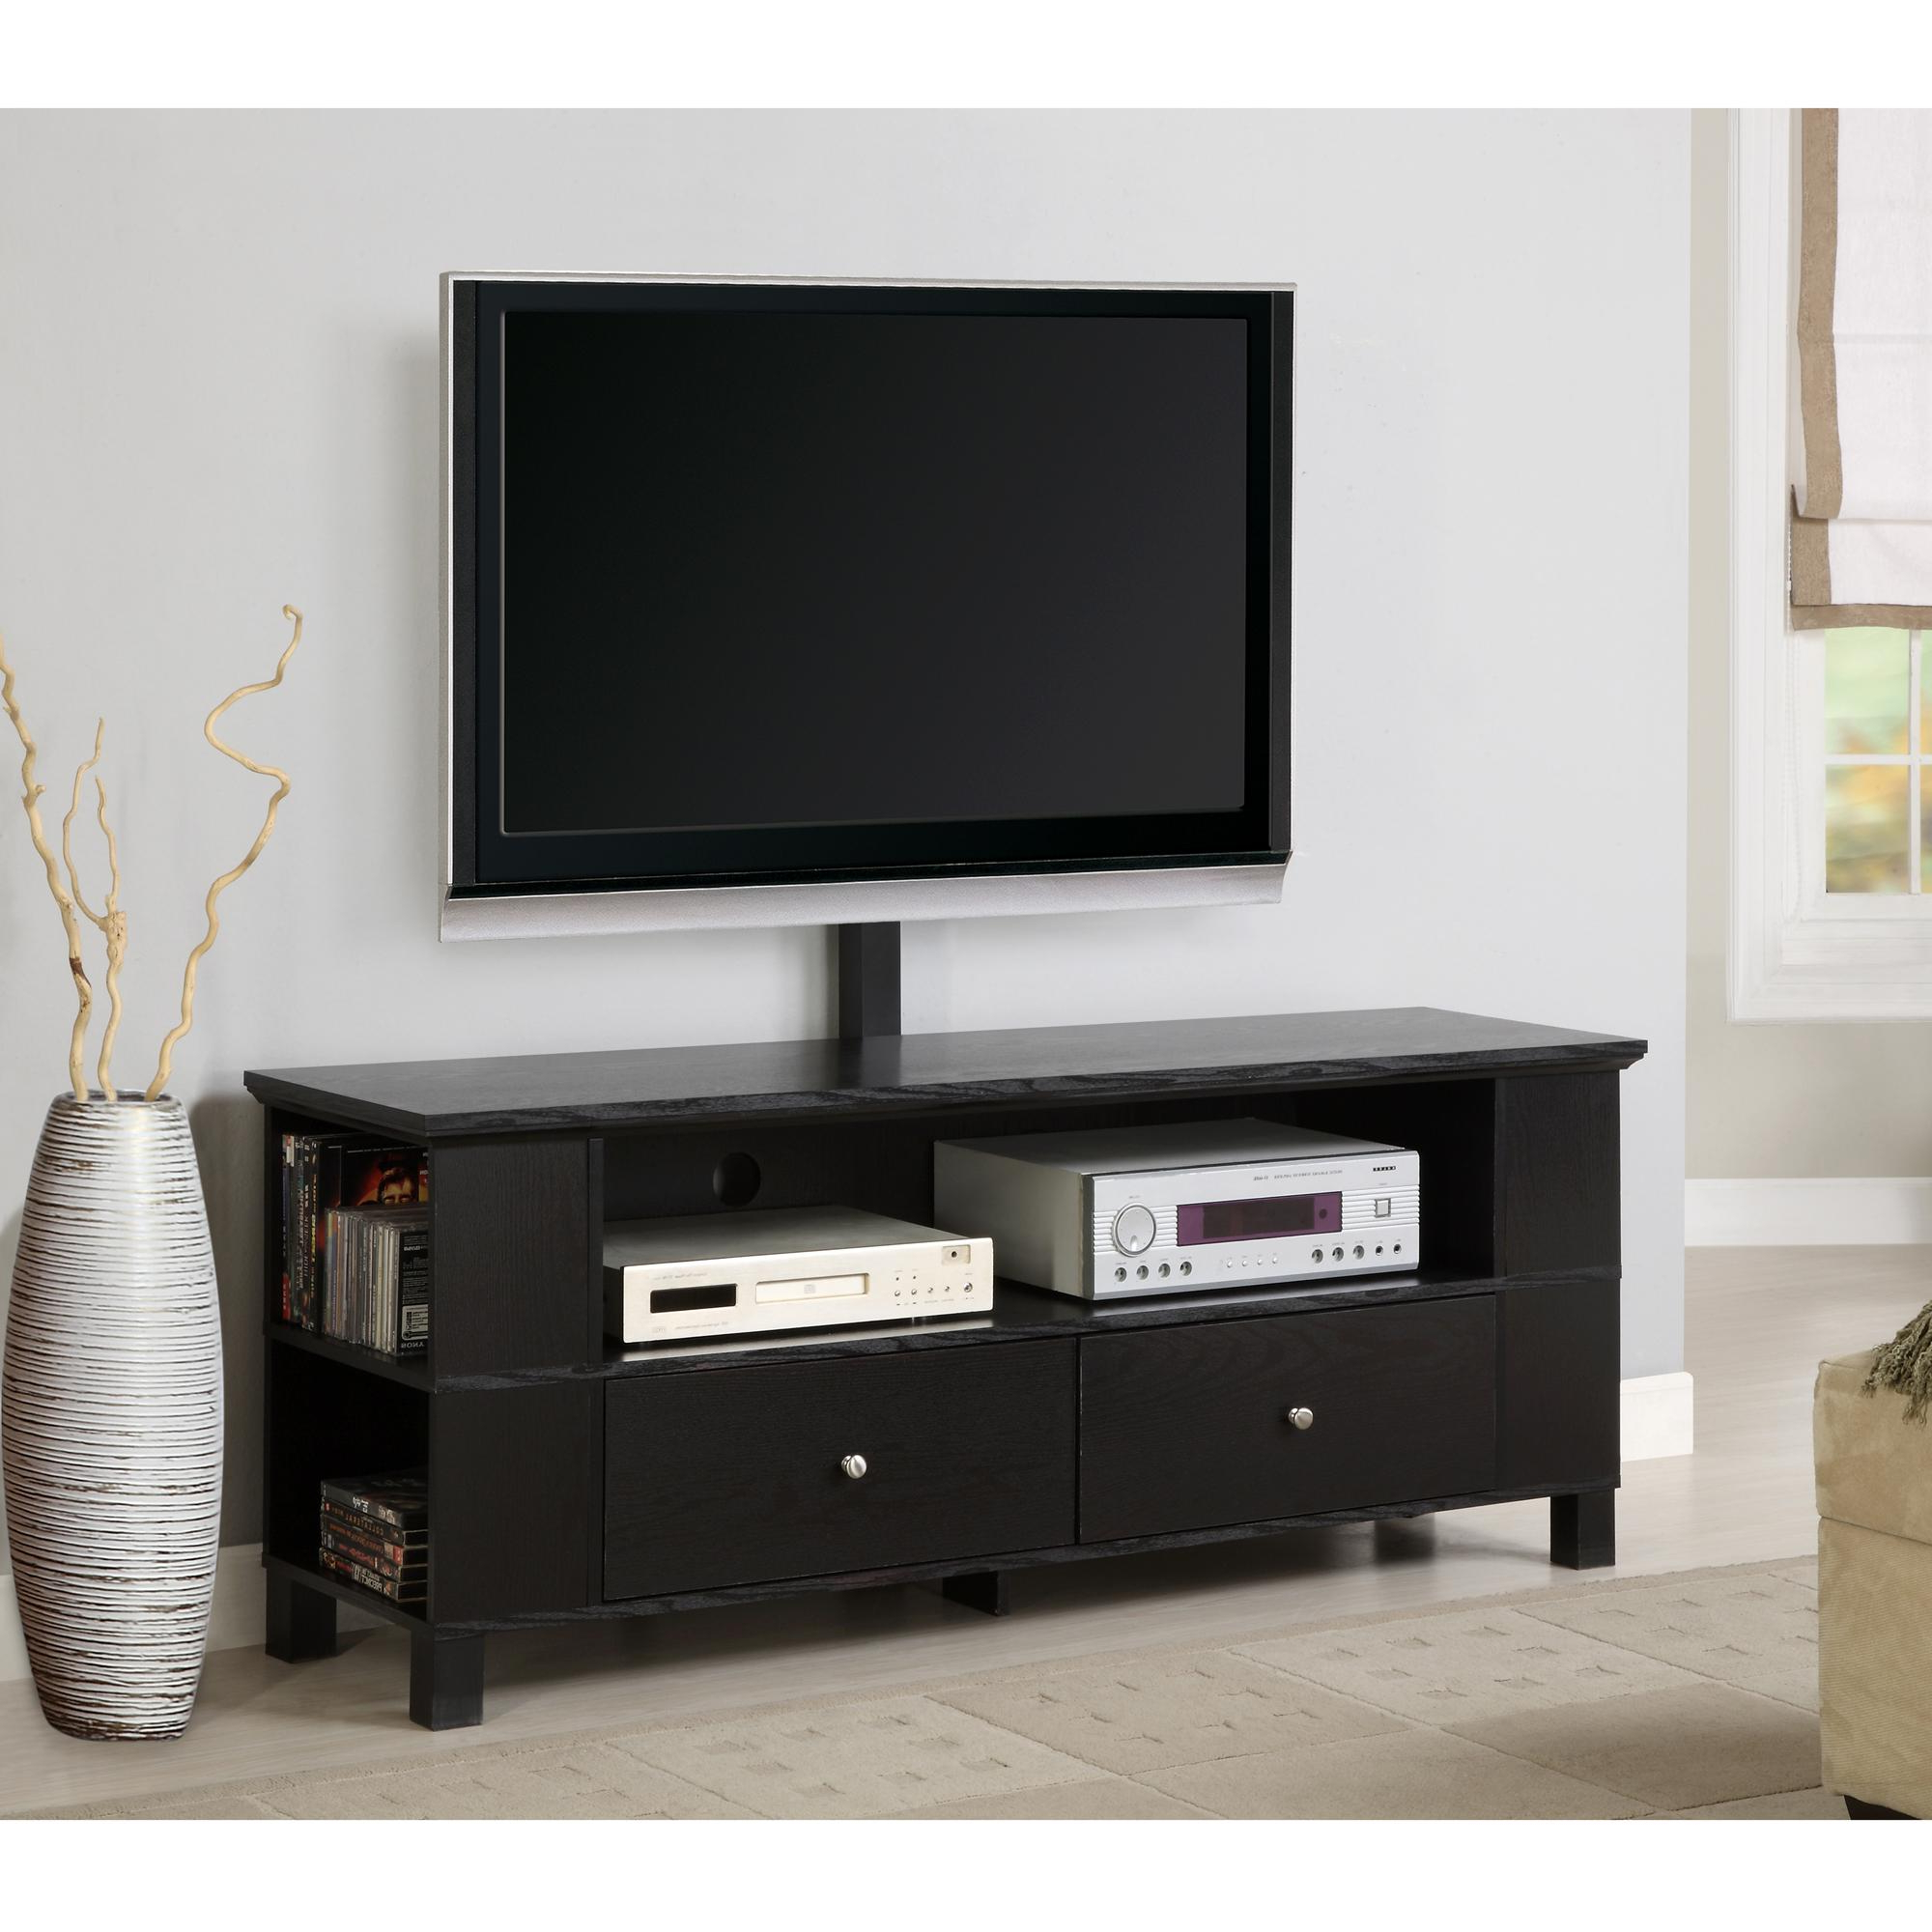 """Margulies Tv Stands For Tvs Up To 60"""" With Regard To 2017 Amazon – Walker Edison 60"""" Class Black Wood Tv Stand (View 2 of 25)"""